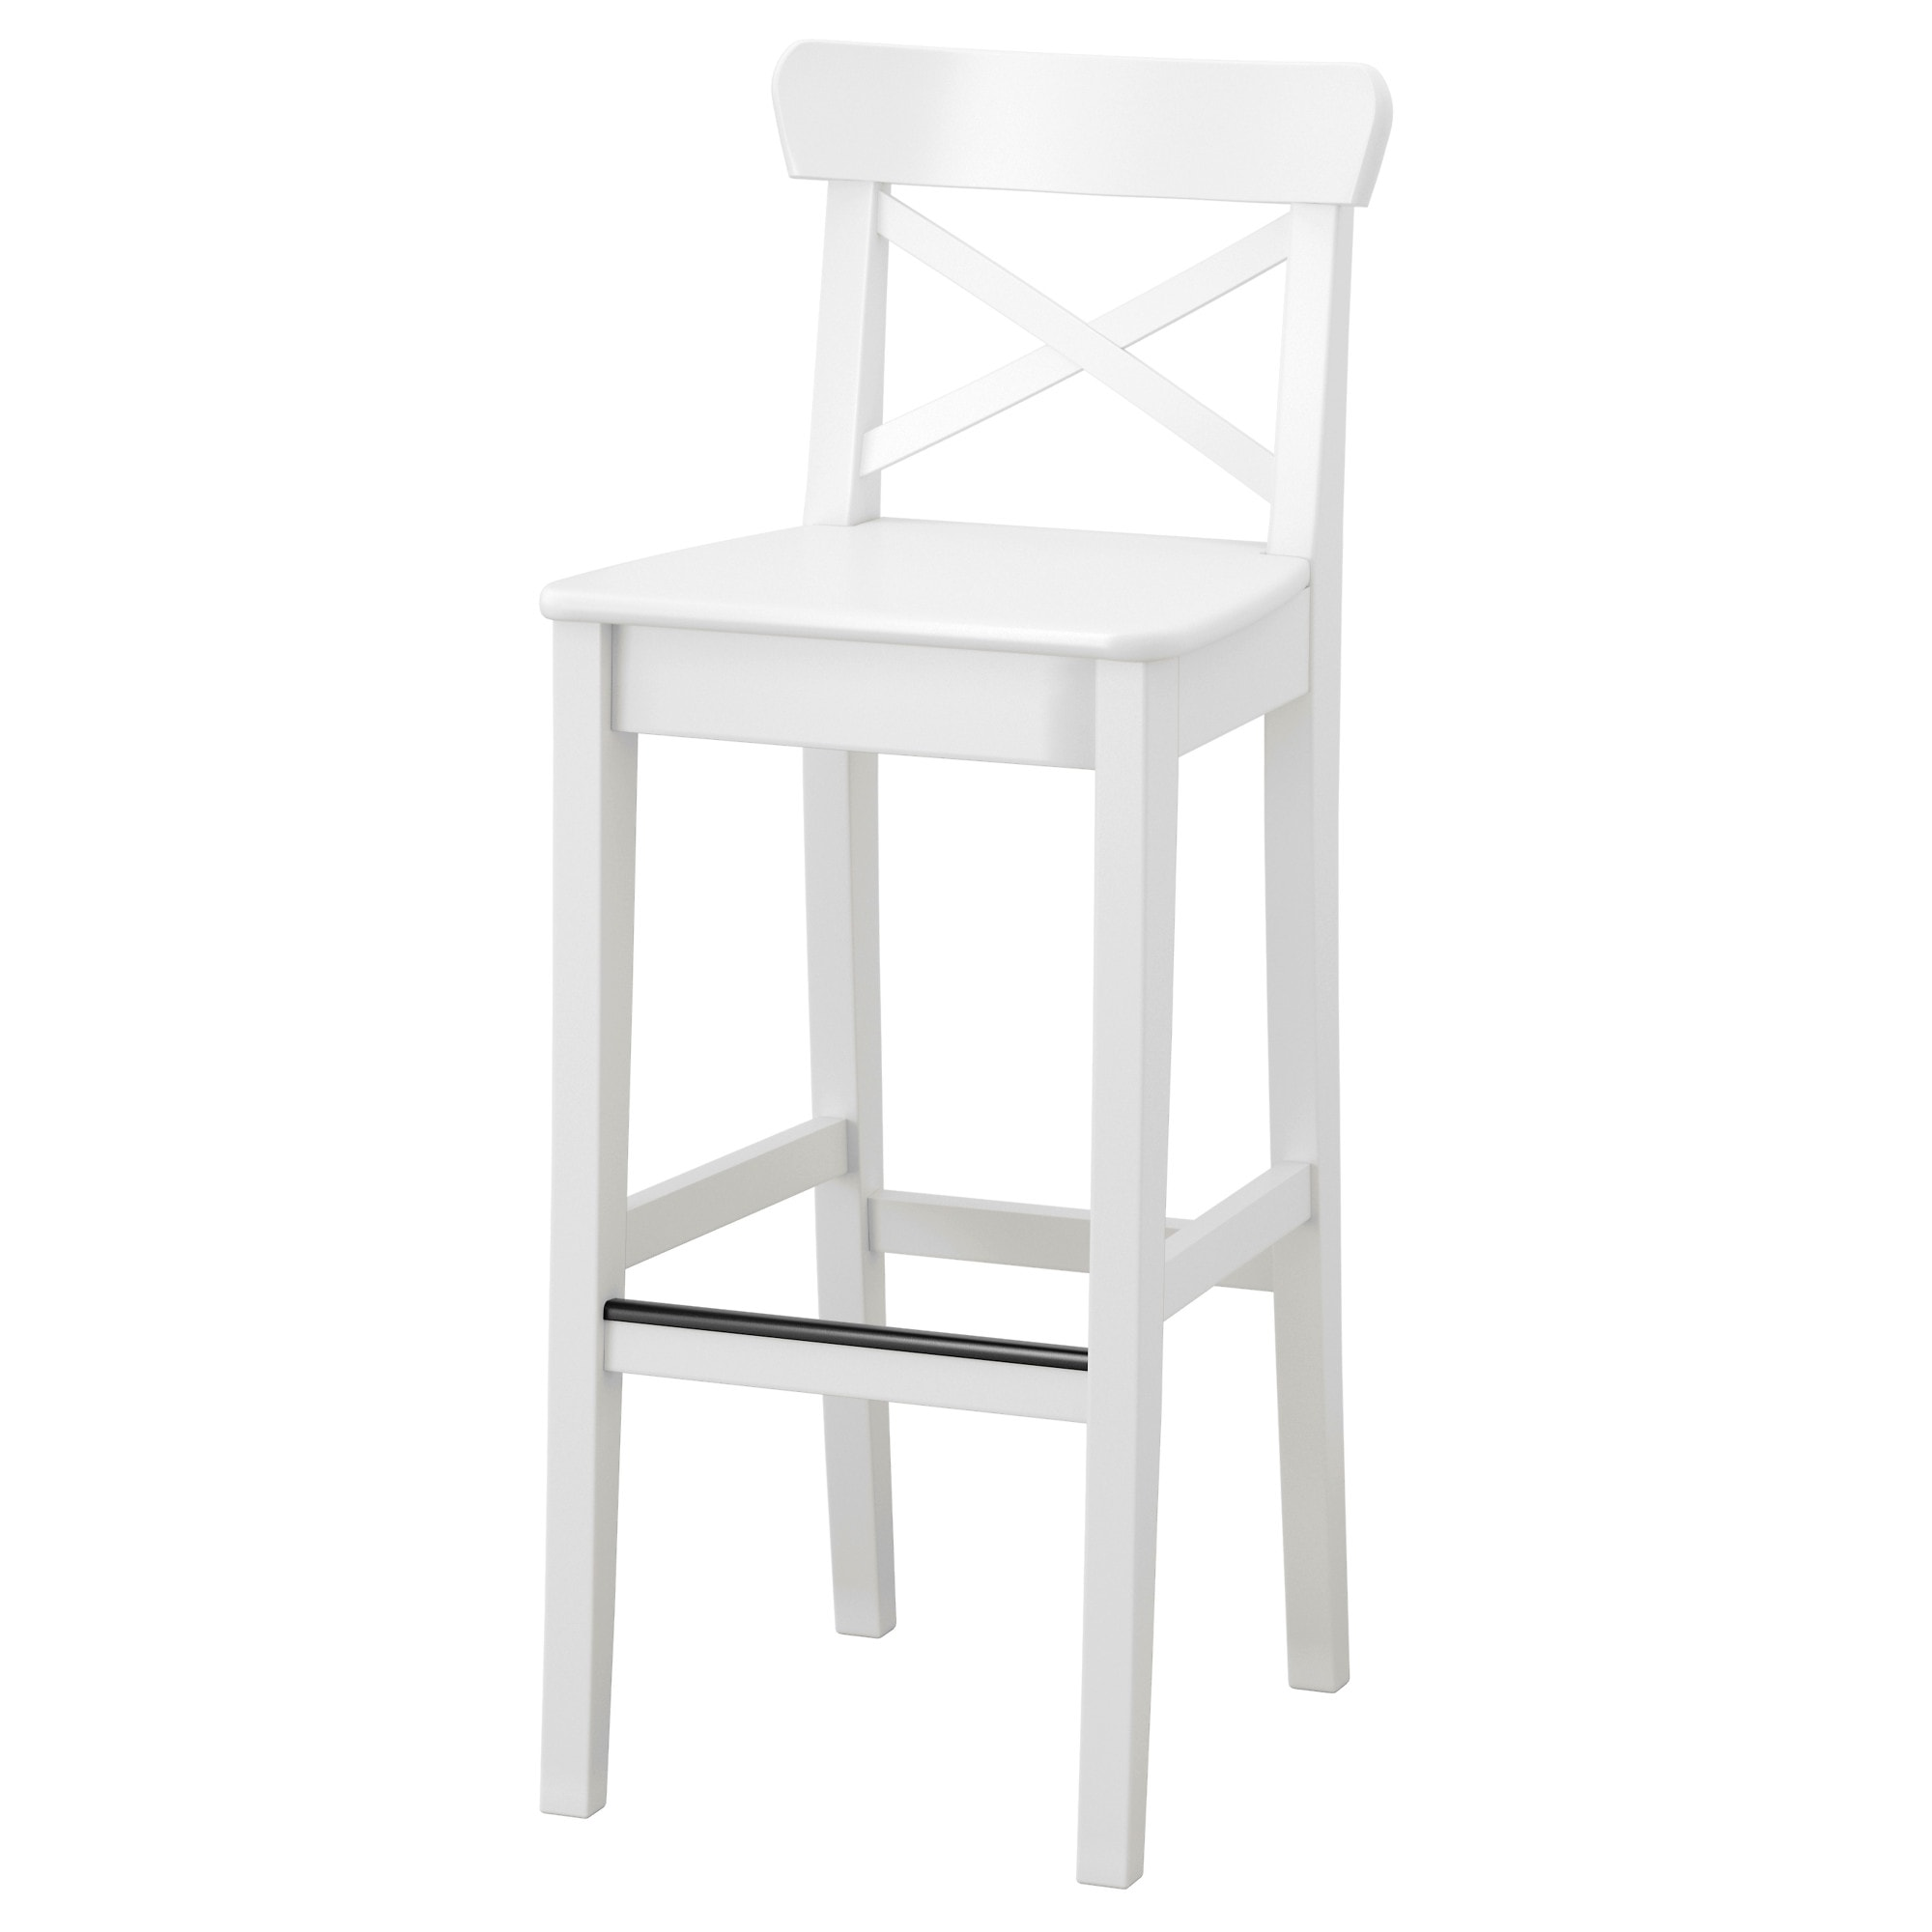 INGOLF Bar Stool With Backrest, White Tested For: 220 Lb Width: 15 3